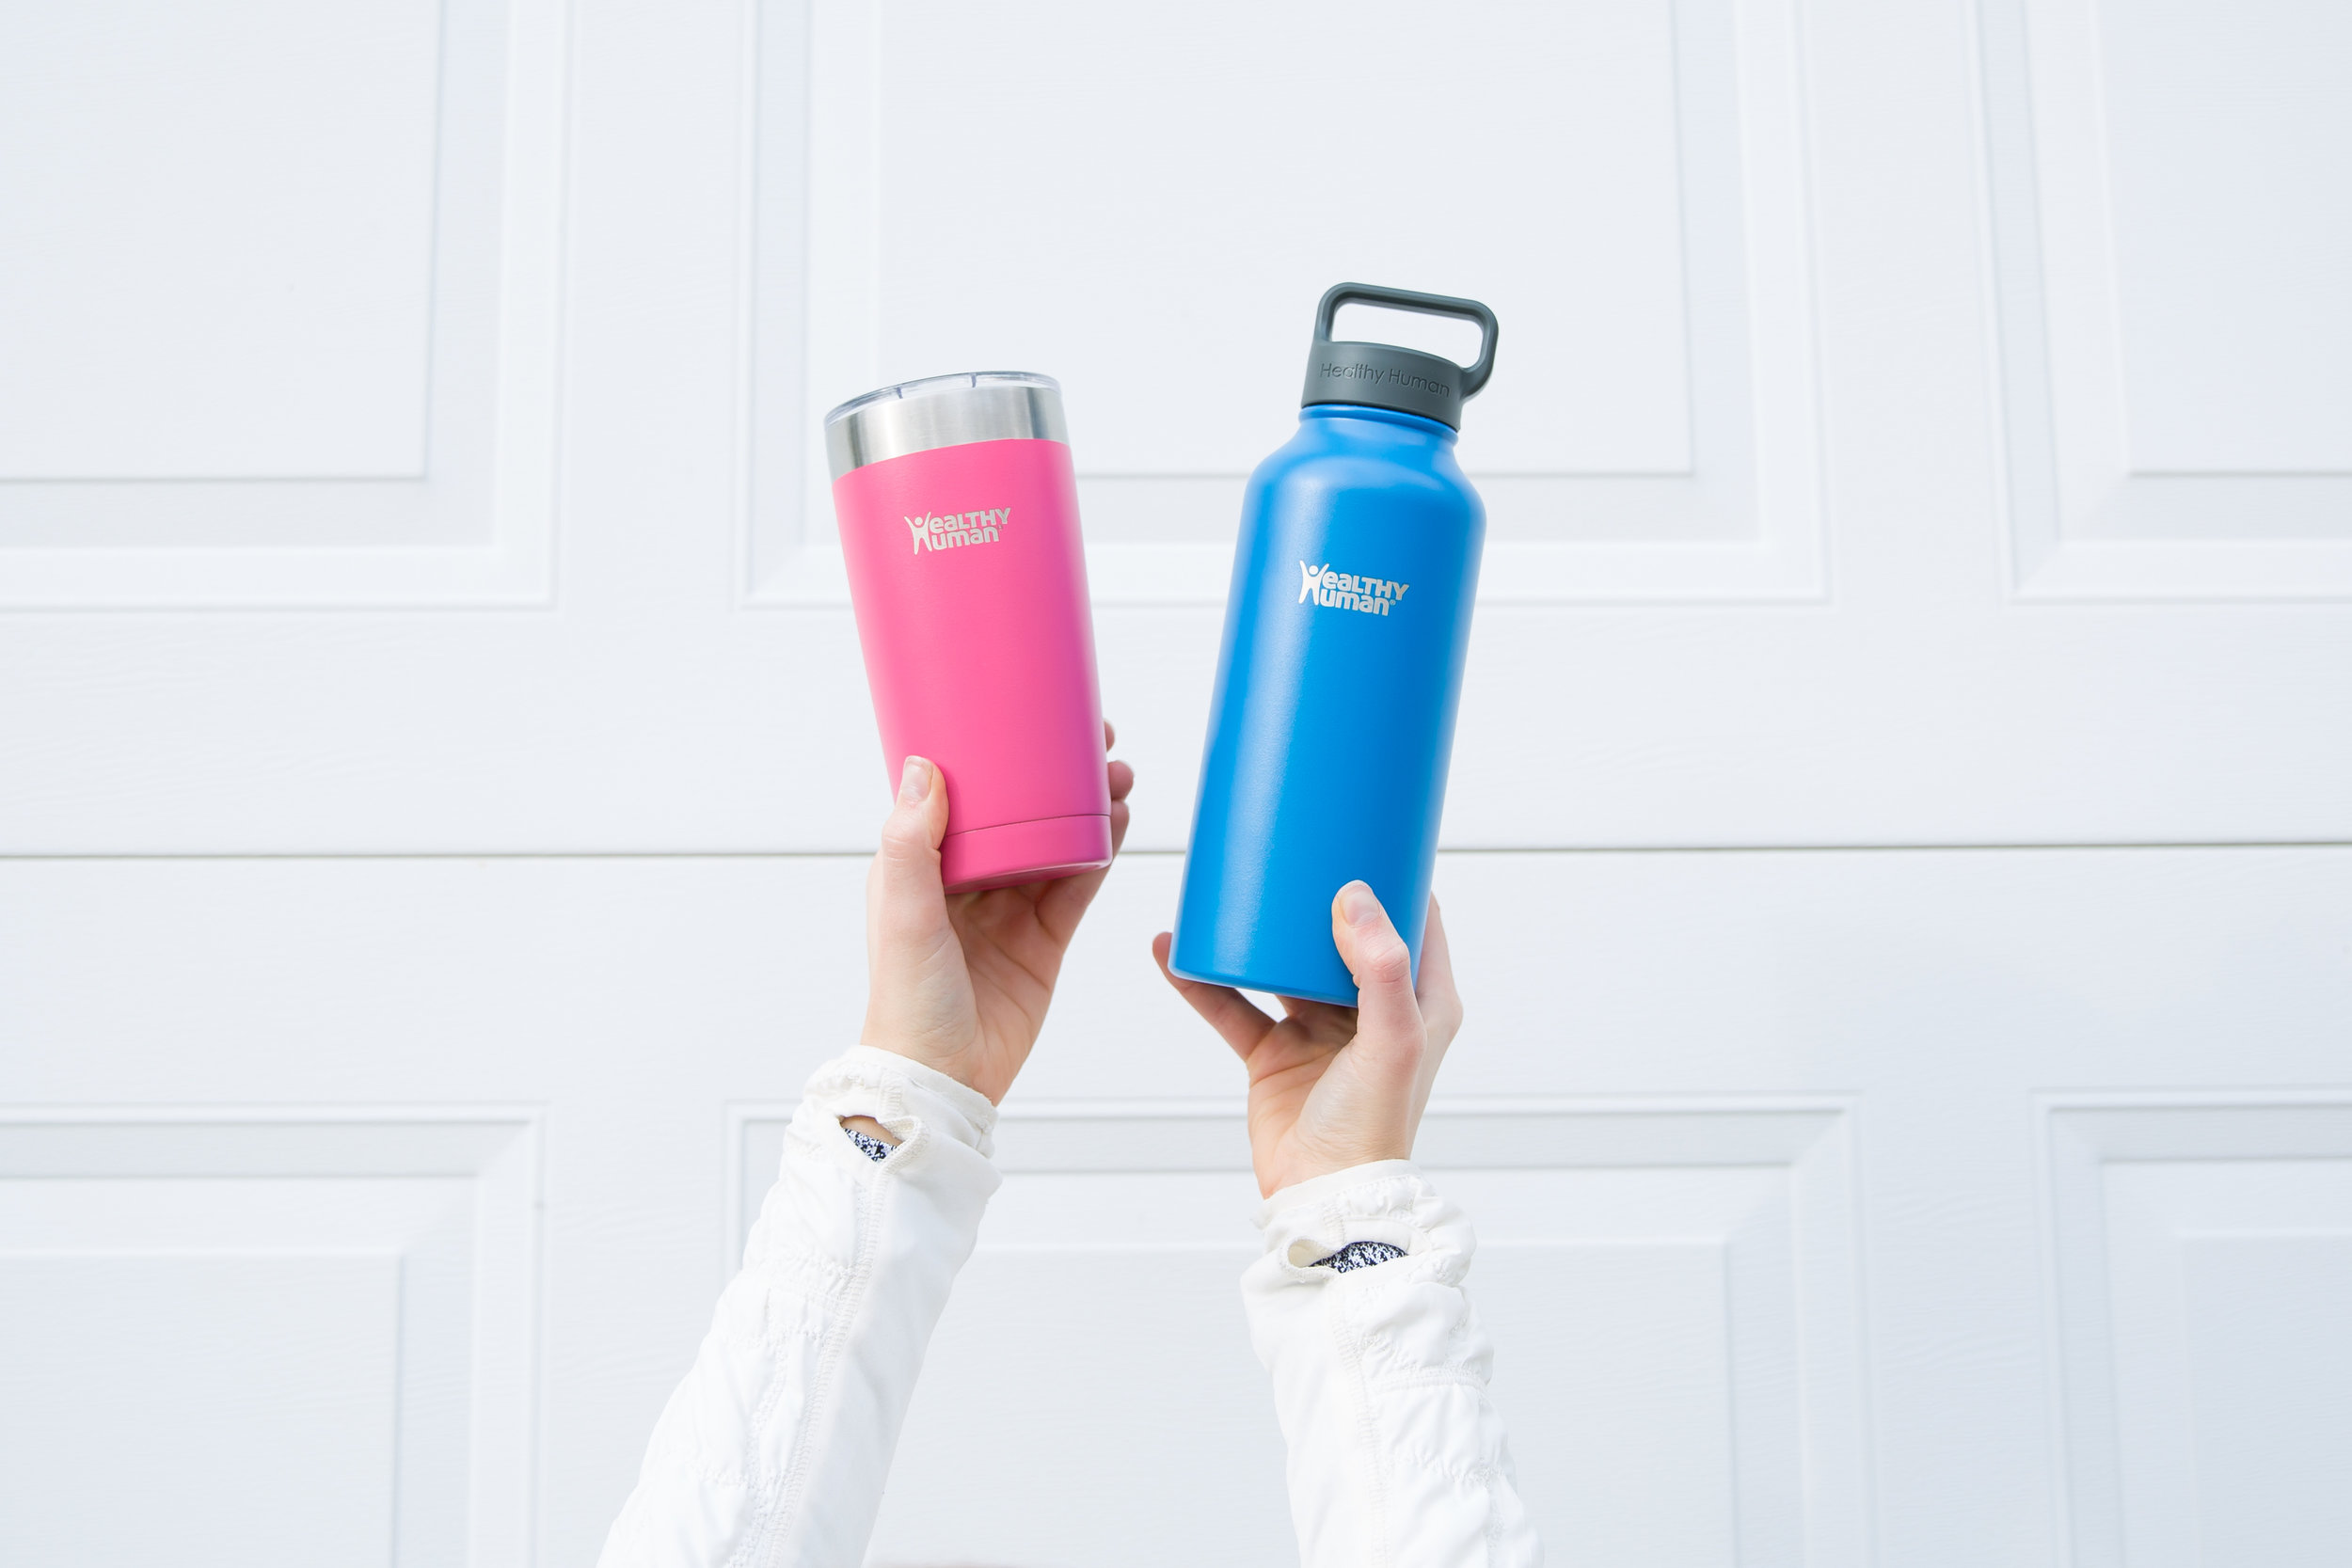 Healthy Human, Healthy Human Life, #takeitwithu, Hydration, Pure Water, Toxin Free, Eliminate Toxins, Best Water Bottle, On The Go, Paleo Approved, BPA Free,